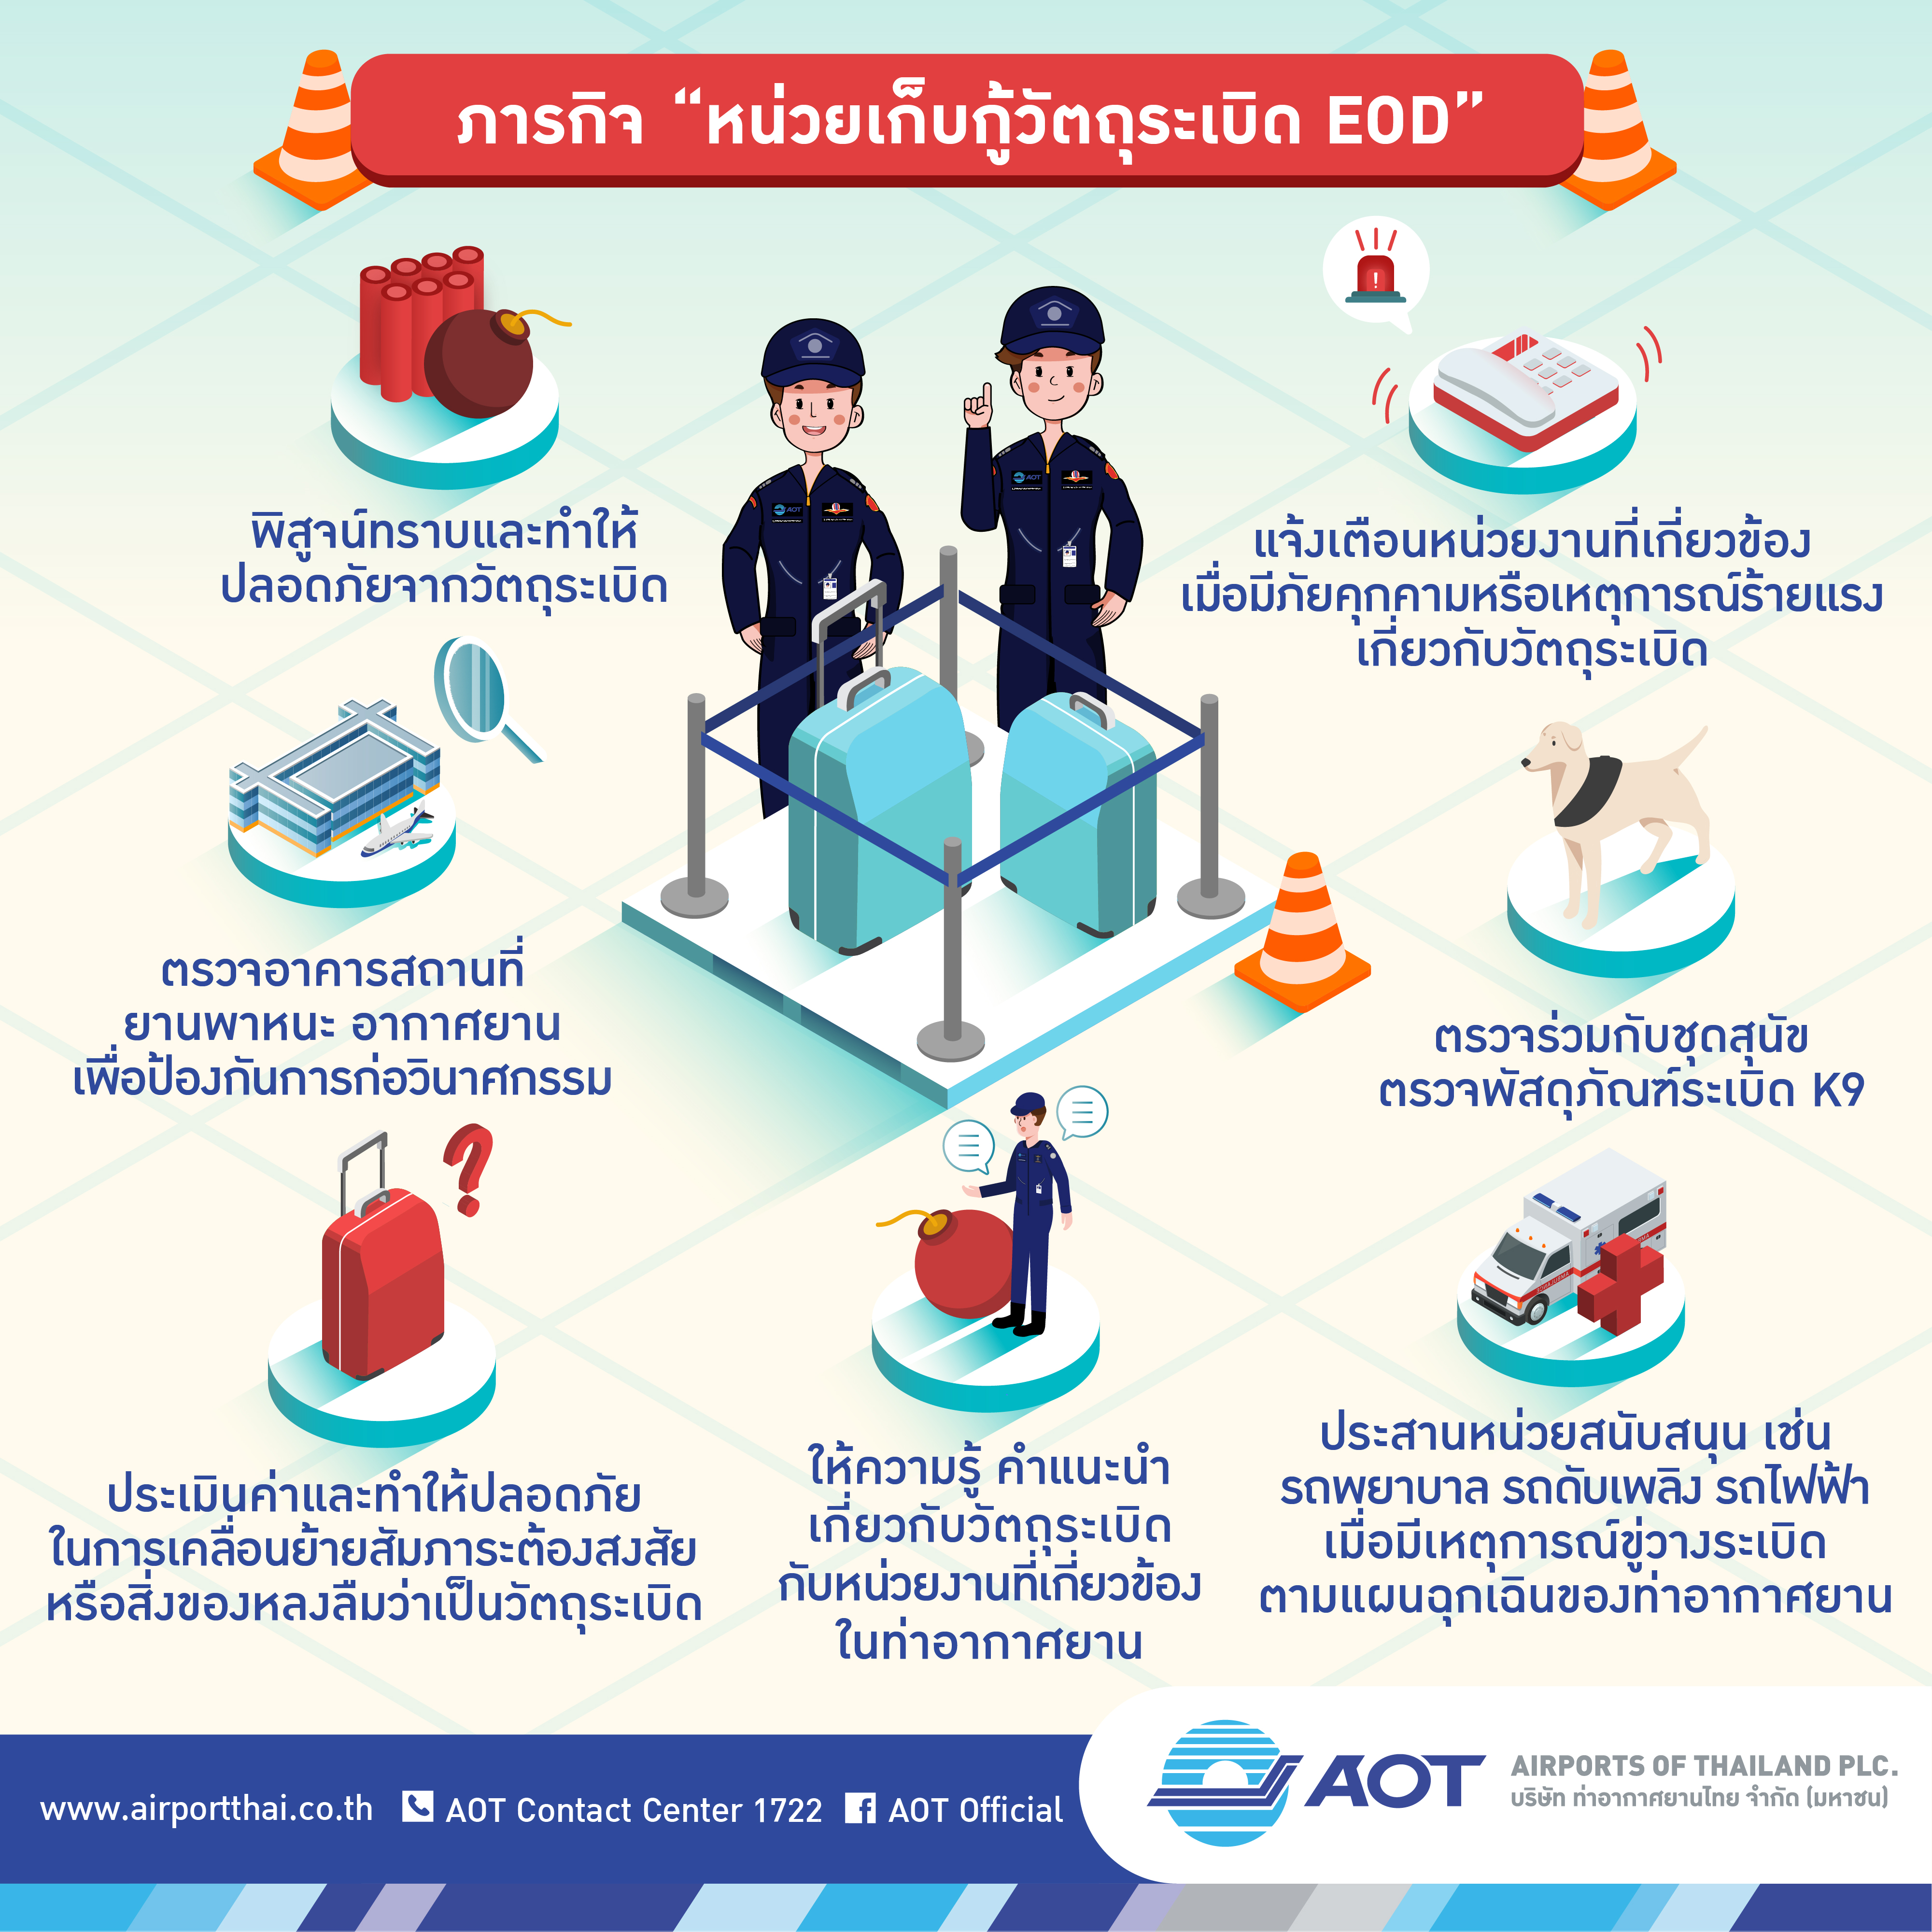 AOTcontent2019_Infographic 16_การปฏิบัติงานของเจ้าหน้าที่ EOD_V9_20190724_page2